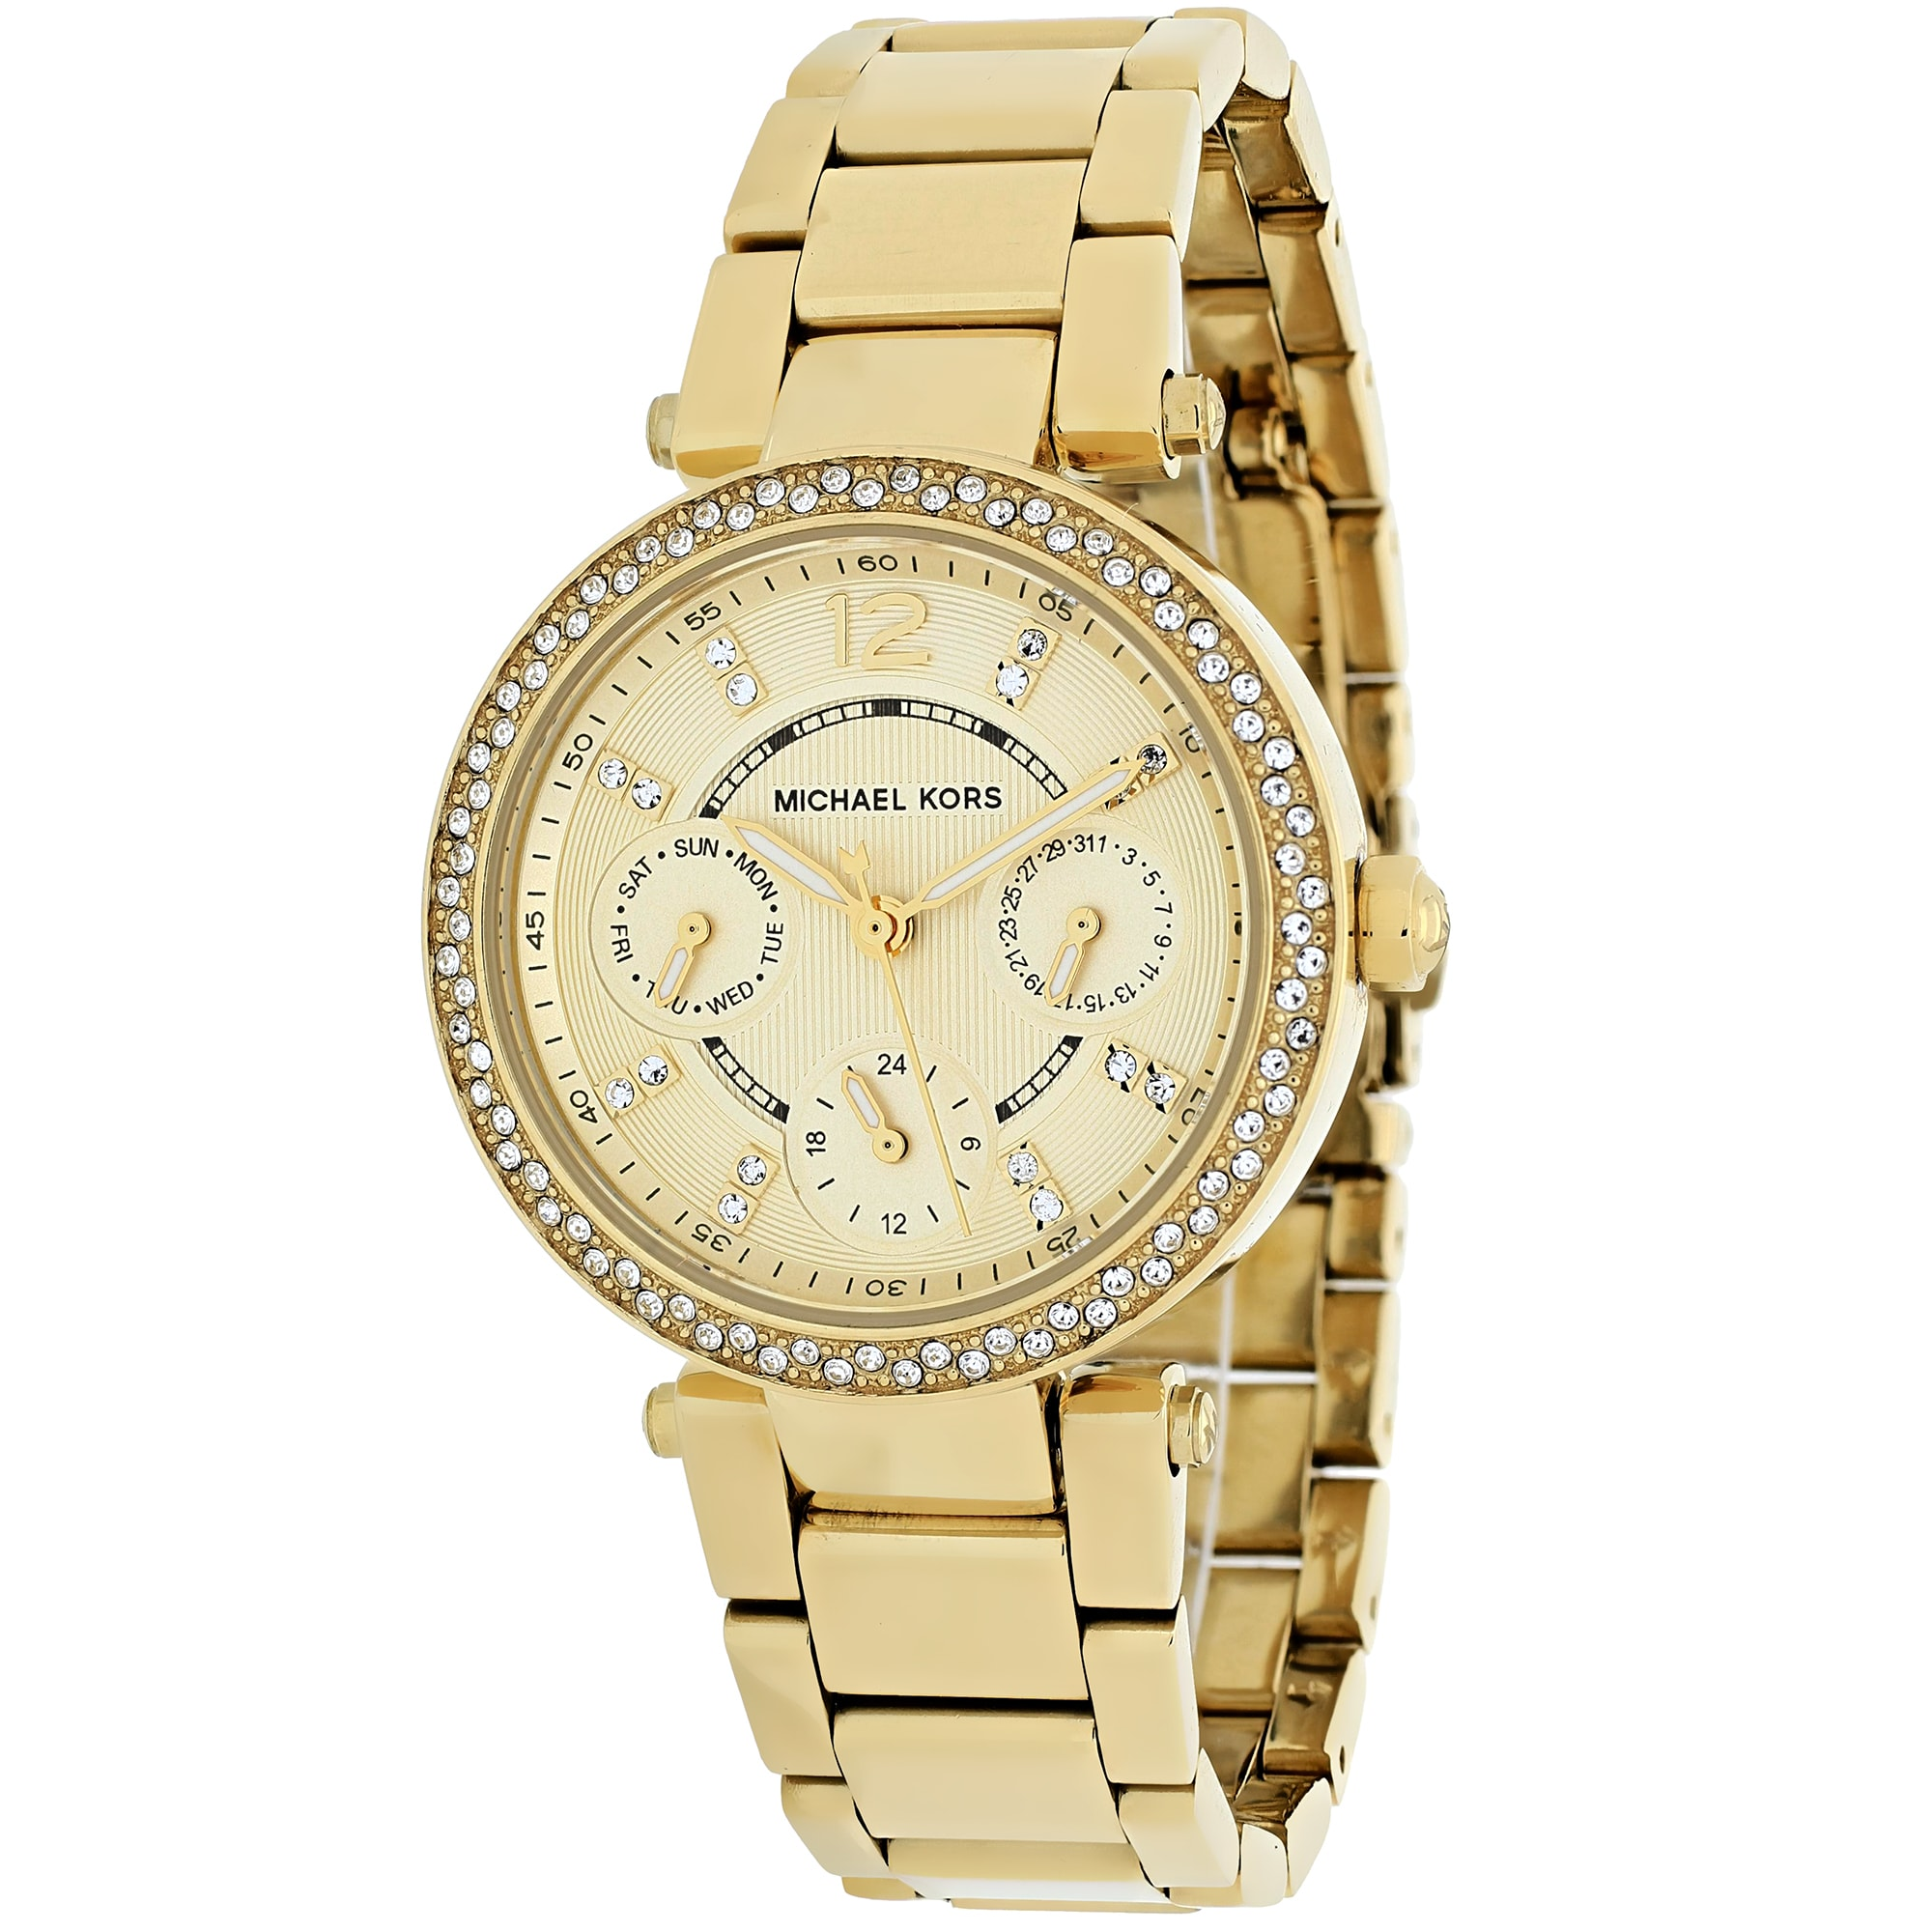 95a8d0865ea97 Michael Kors Women s  Mini Parker  Gold Tone Ion Plated Stainless Steel  MK6056 Watch